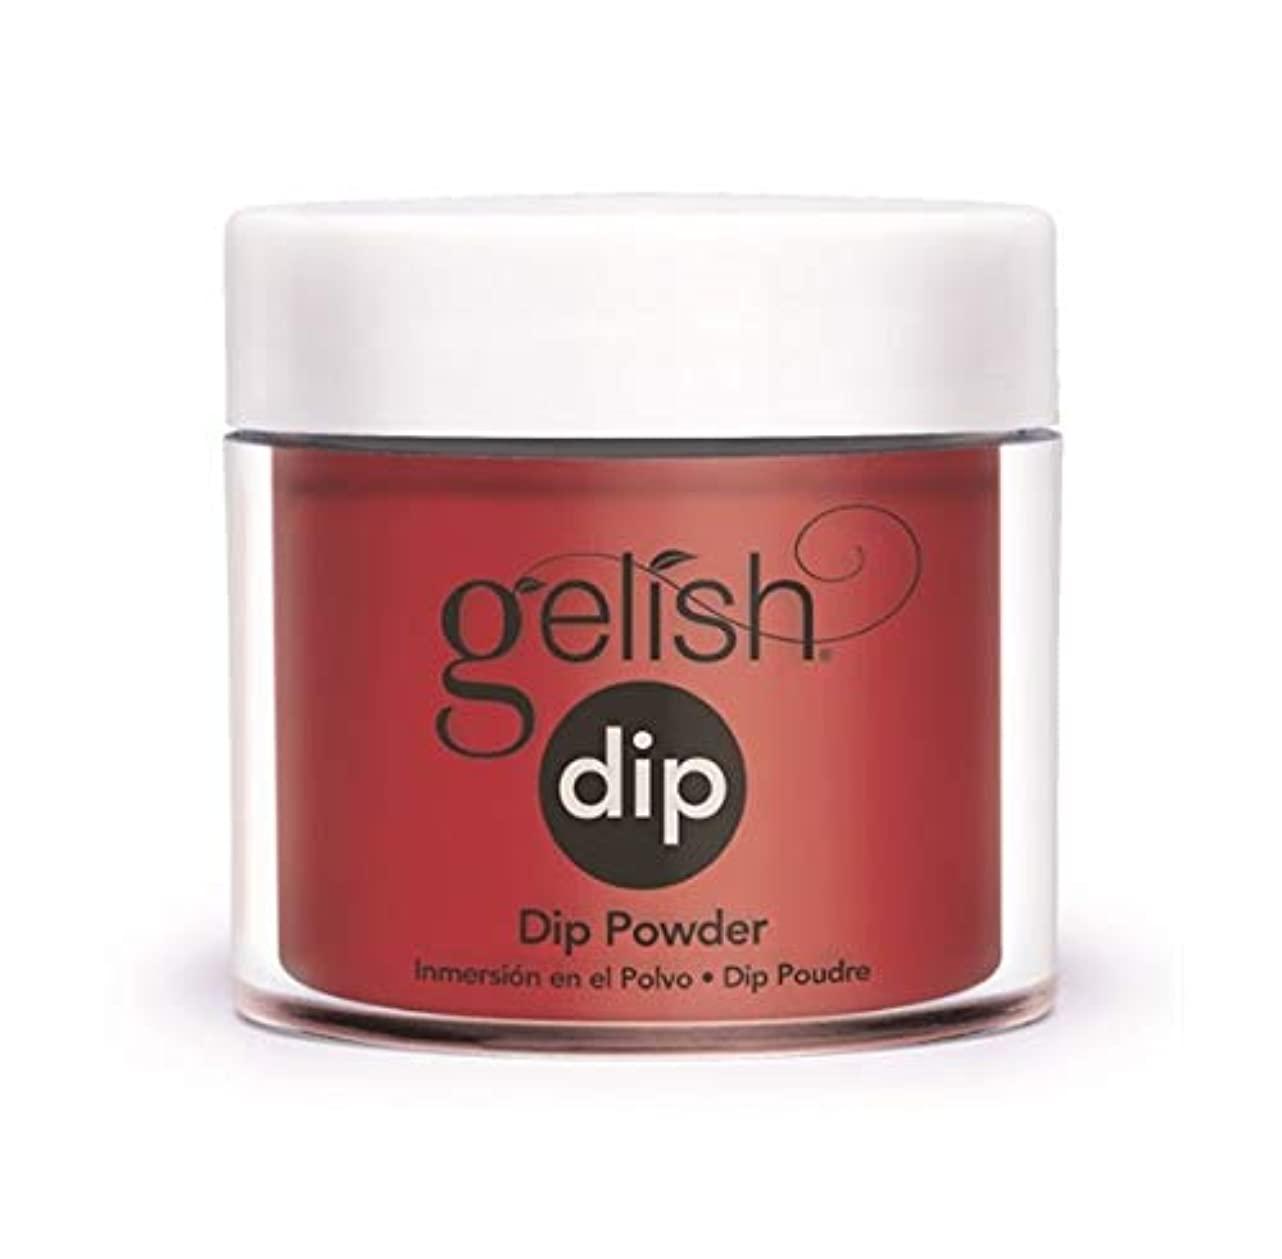 Harmony Gelish - Dip Powder - Forever Marilyn Fall 2019 Collection - Classic Red Lips - 23g / 0.8oz